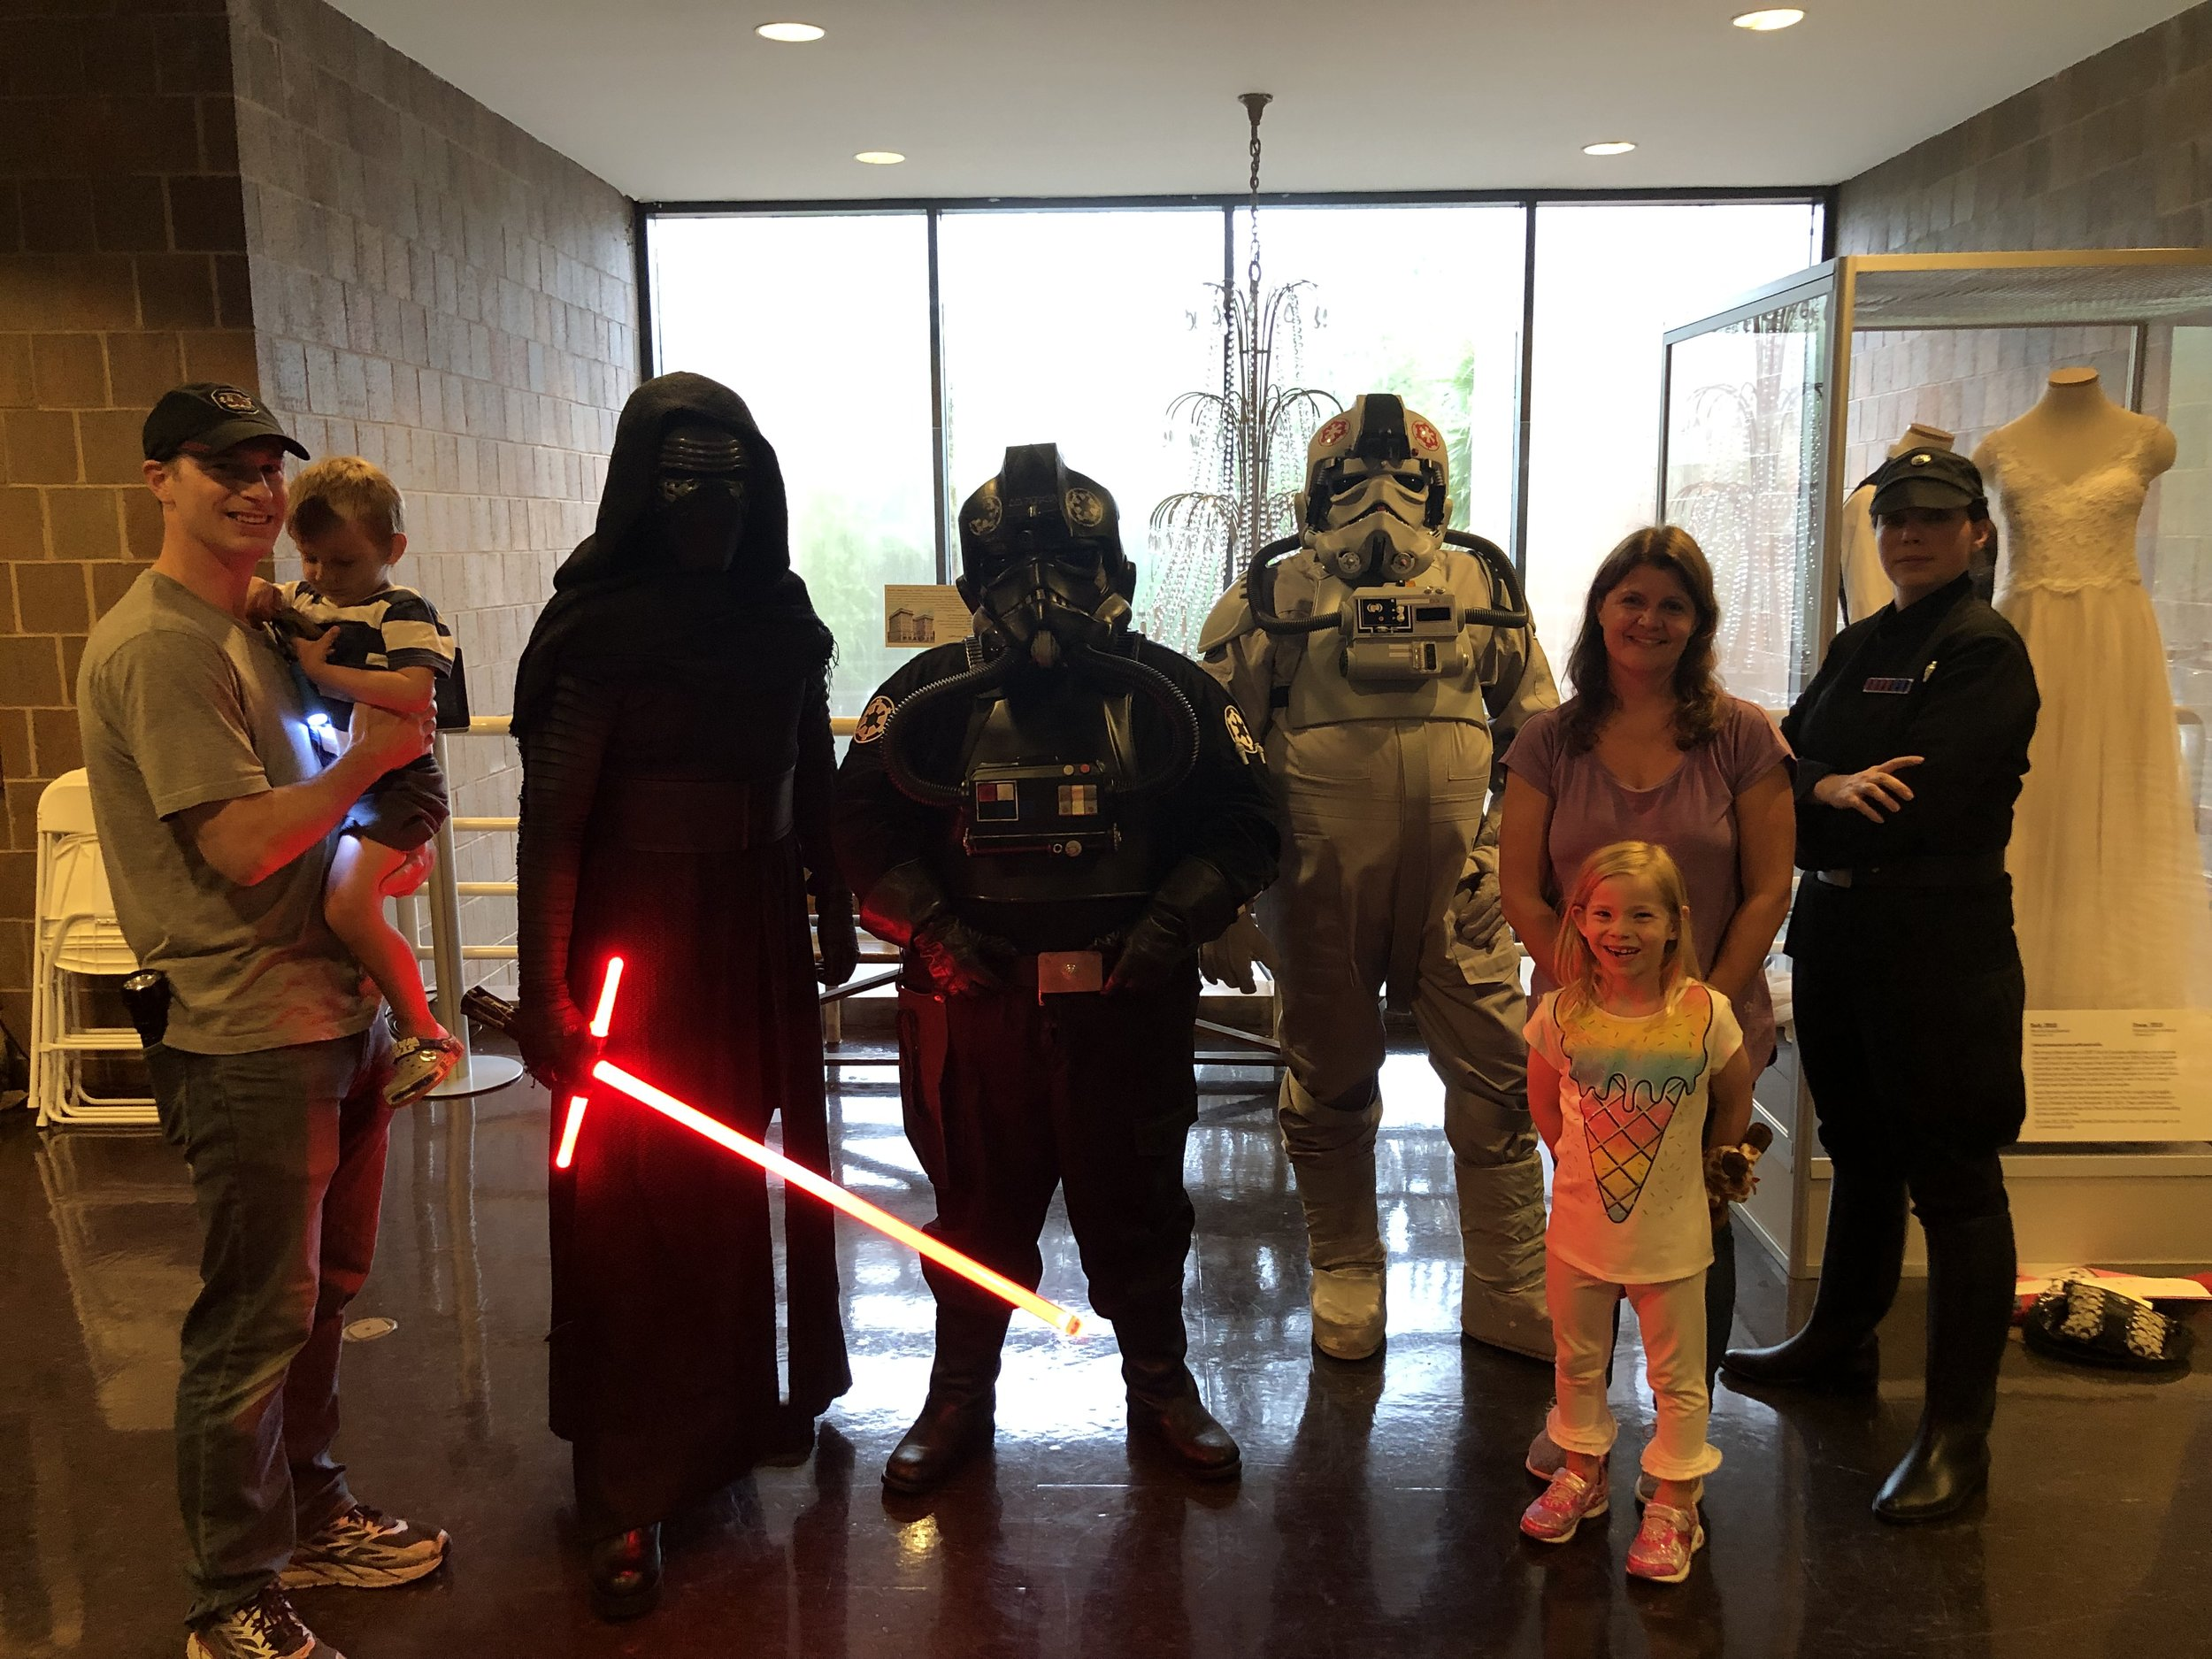 Posing with Kylo-Ren and some other imposing Star Wars characters!